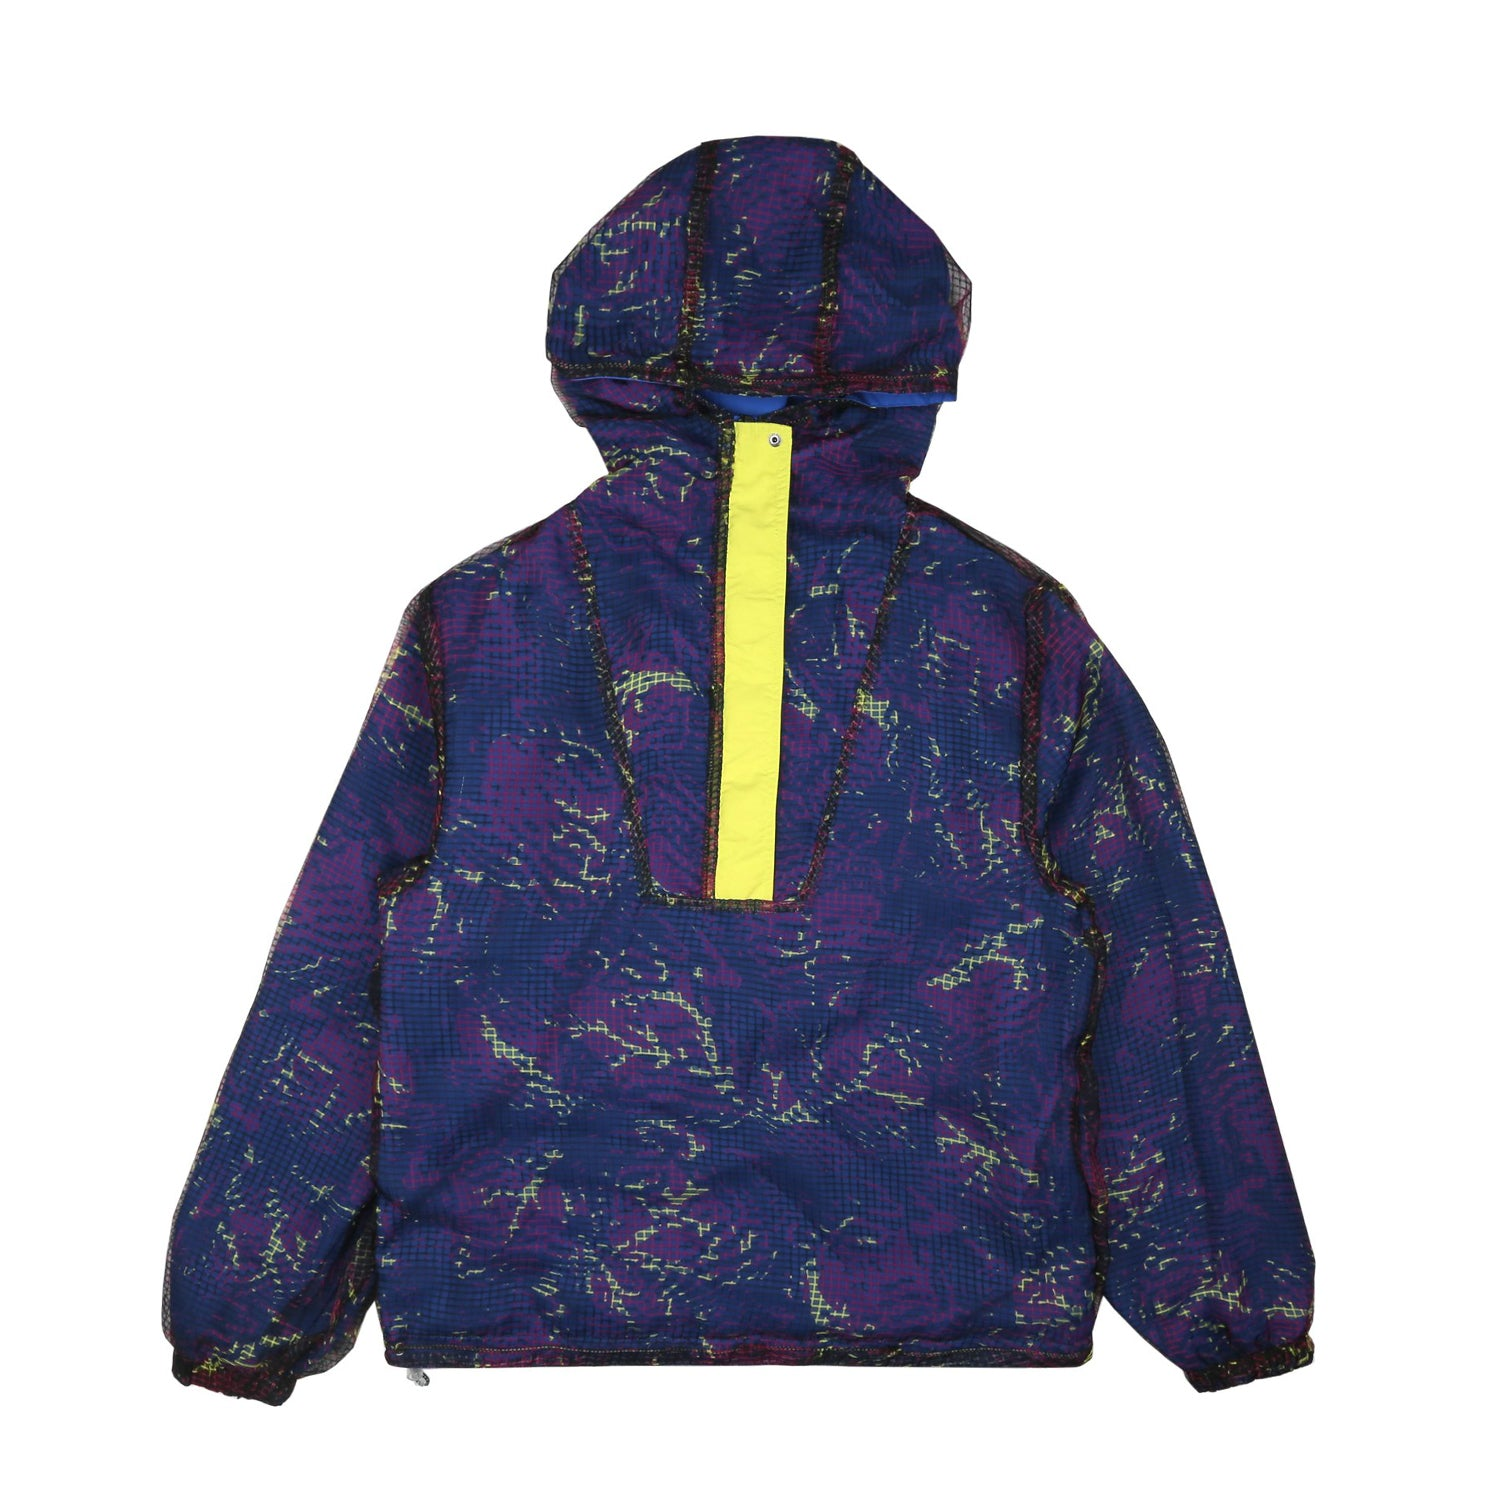 REVERSIBLE FISH CAMO NYLON JACKET